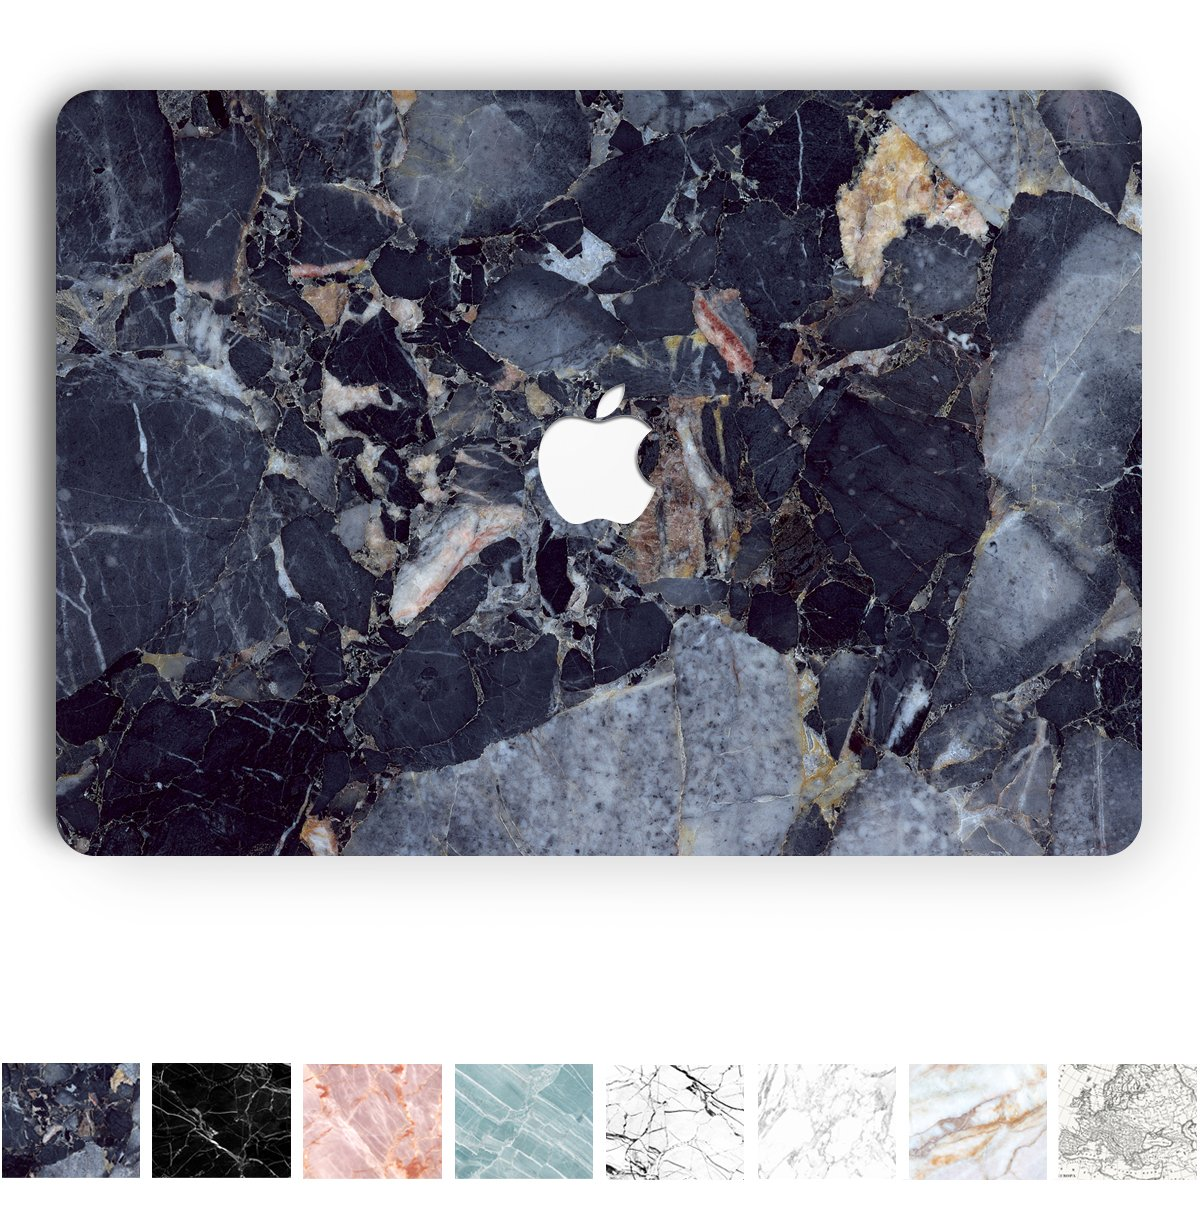 Koru Premium Royal Blue Marble Vinyl Decal Skin Sticker Case Cover for MacBook Pro 13 inch Retina Without CD Drive (Models A1425 and A1502)